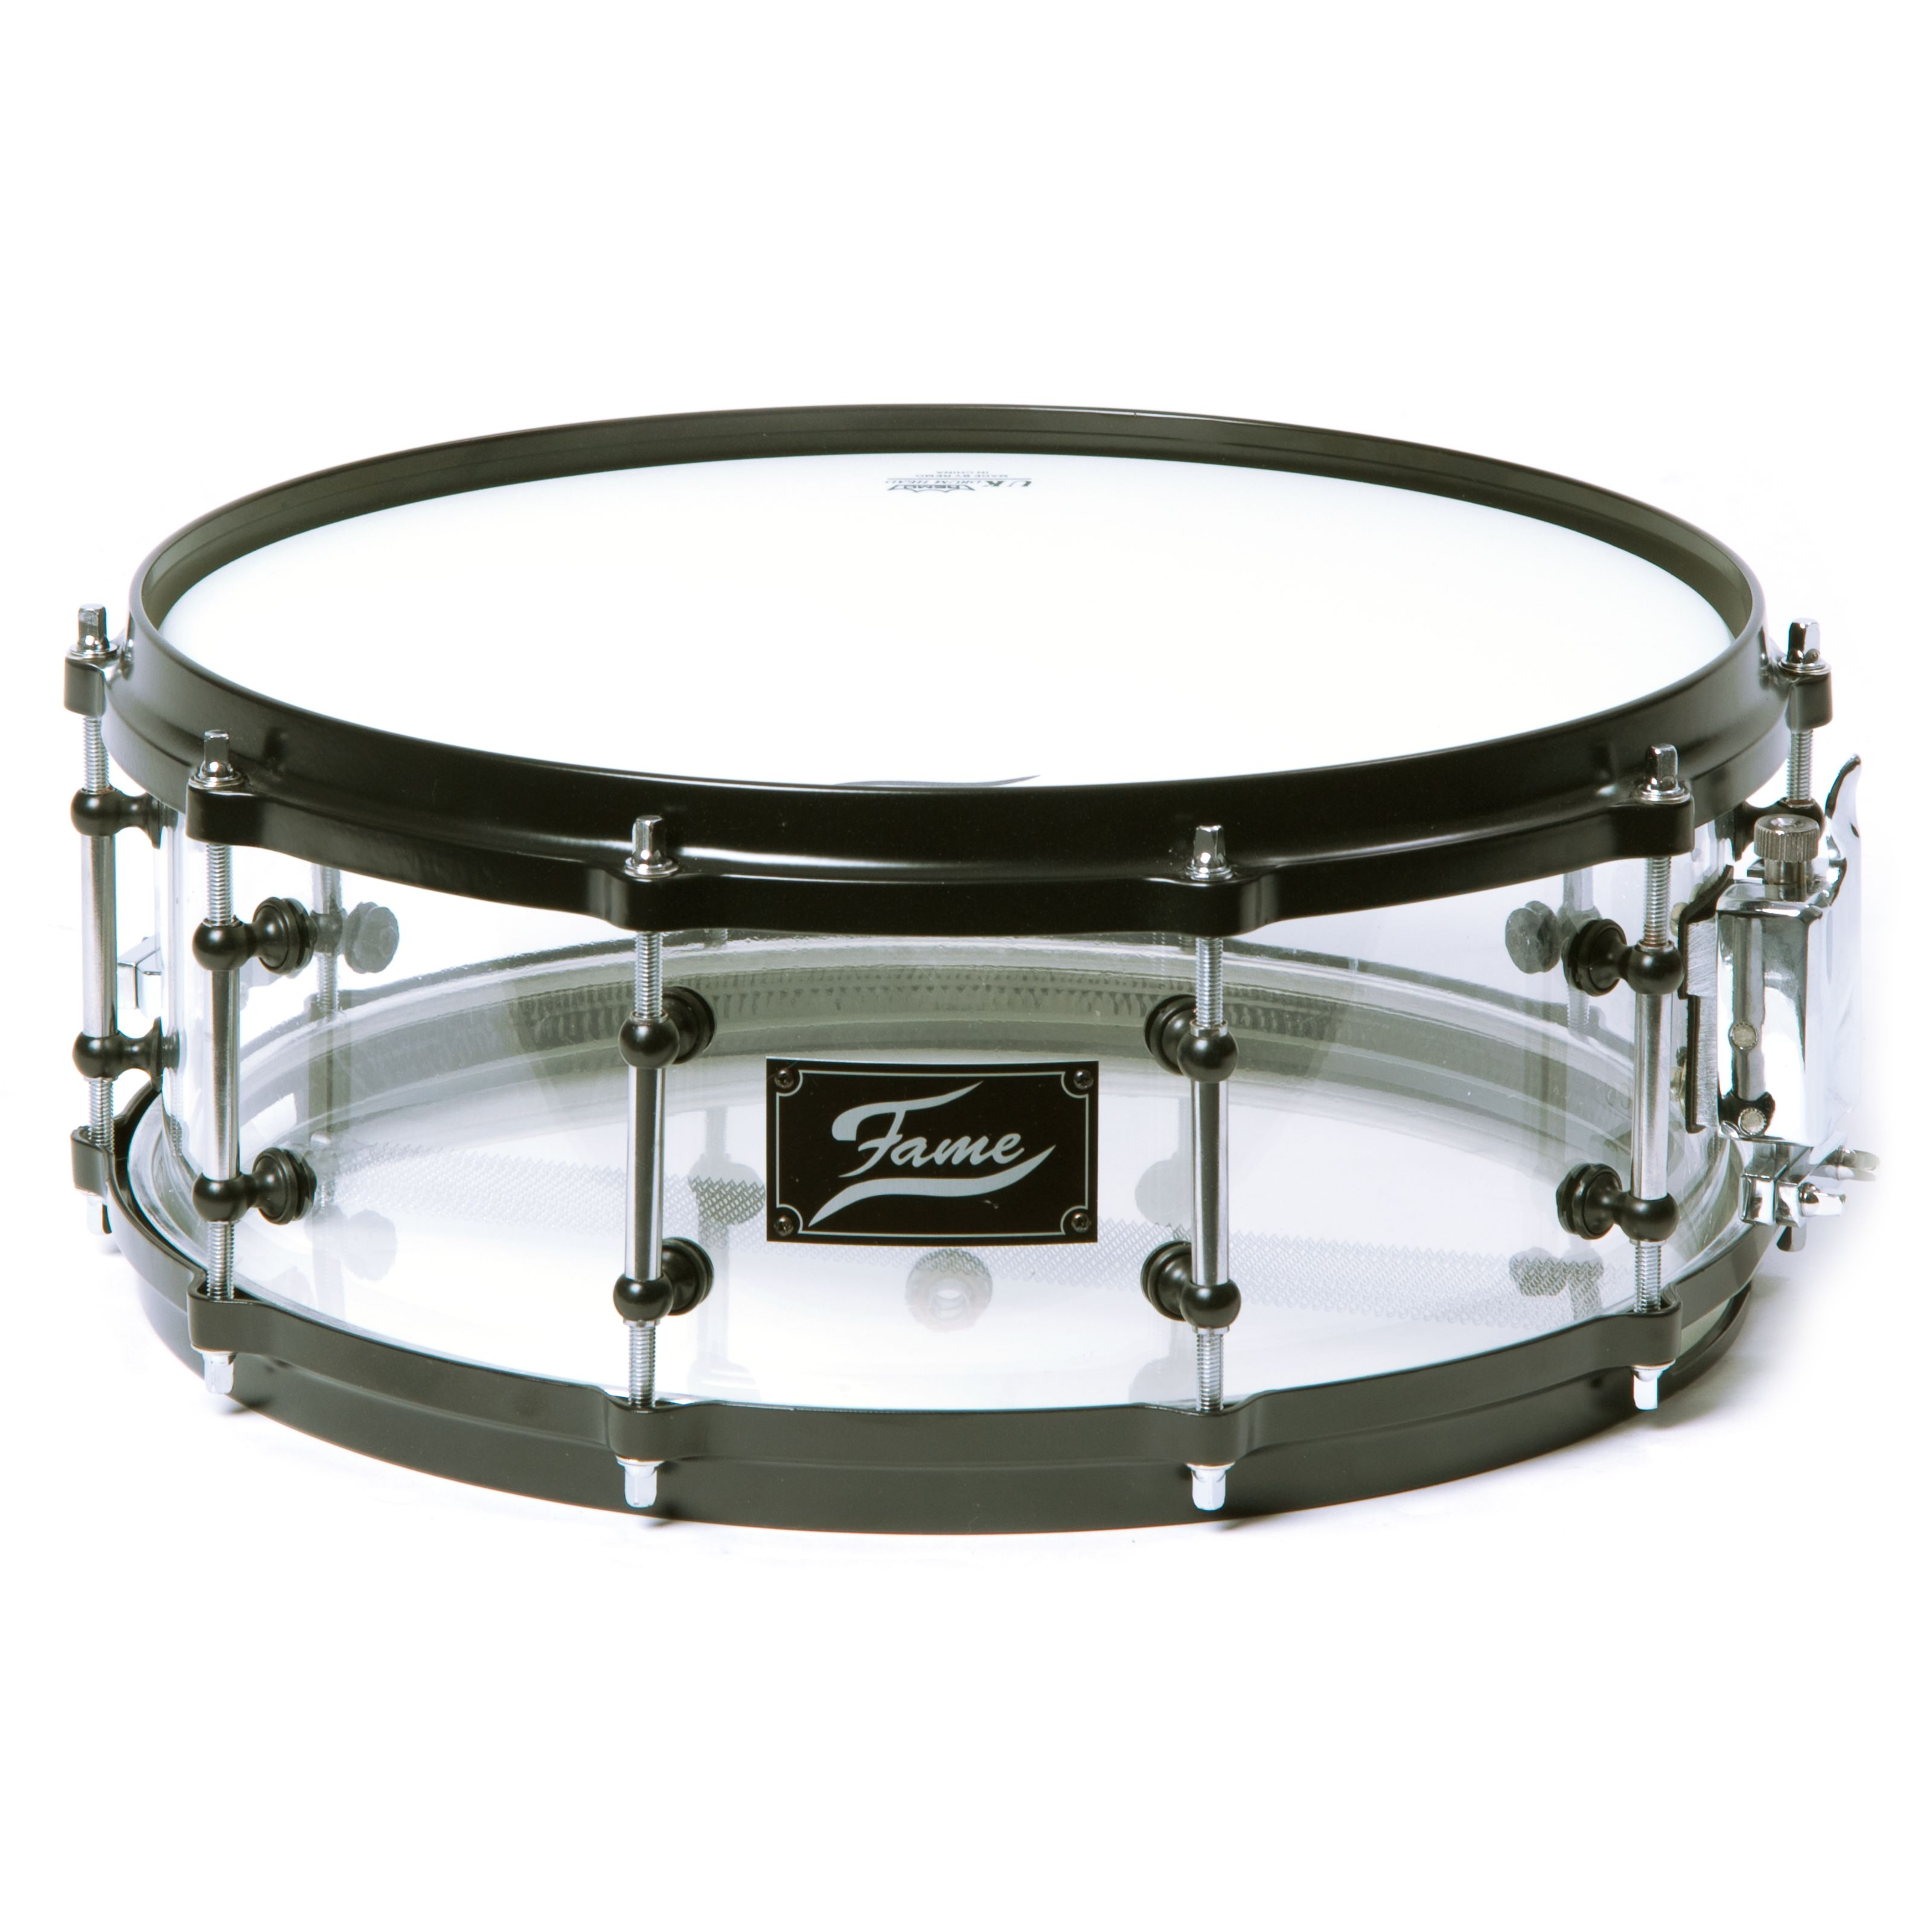 Fame - Acryl Snare 14x5,5, #Clear, Black HW Acrylic snare 14x5.5